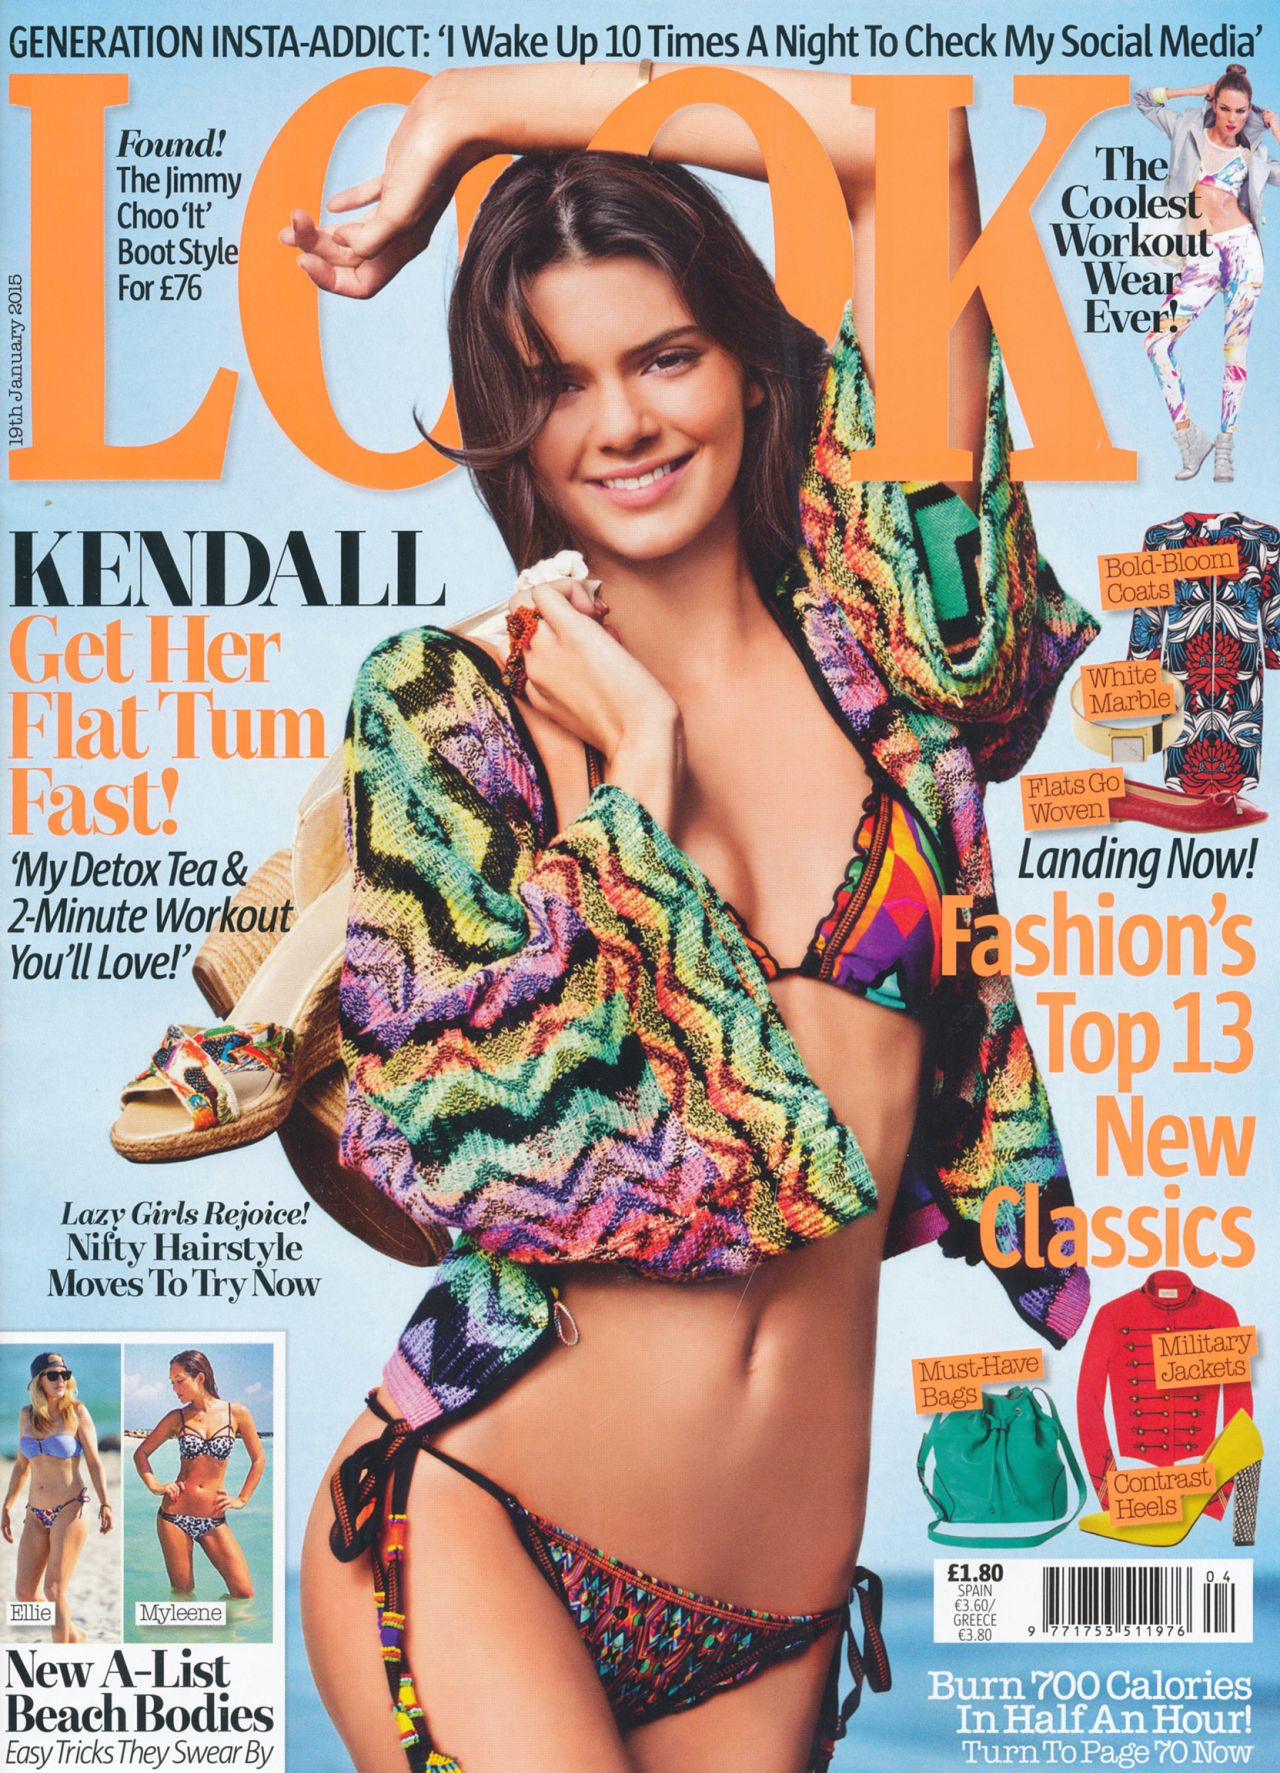 Kendall Jenner - Look Magazine January 19th 2015 Issue